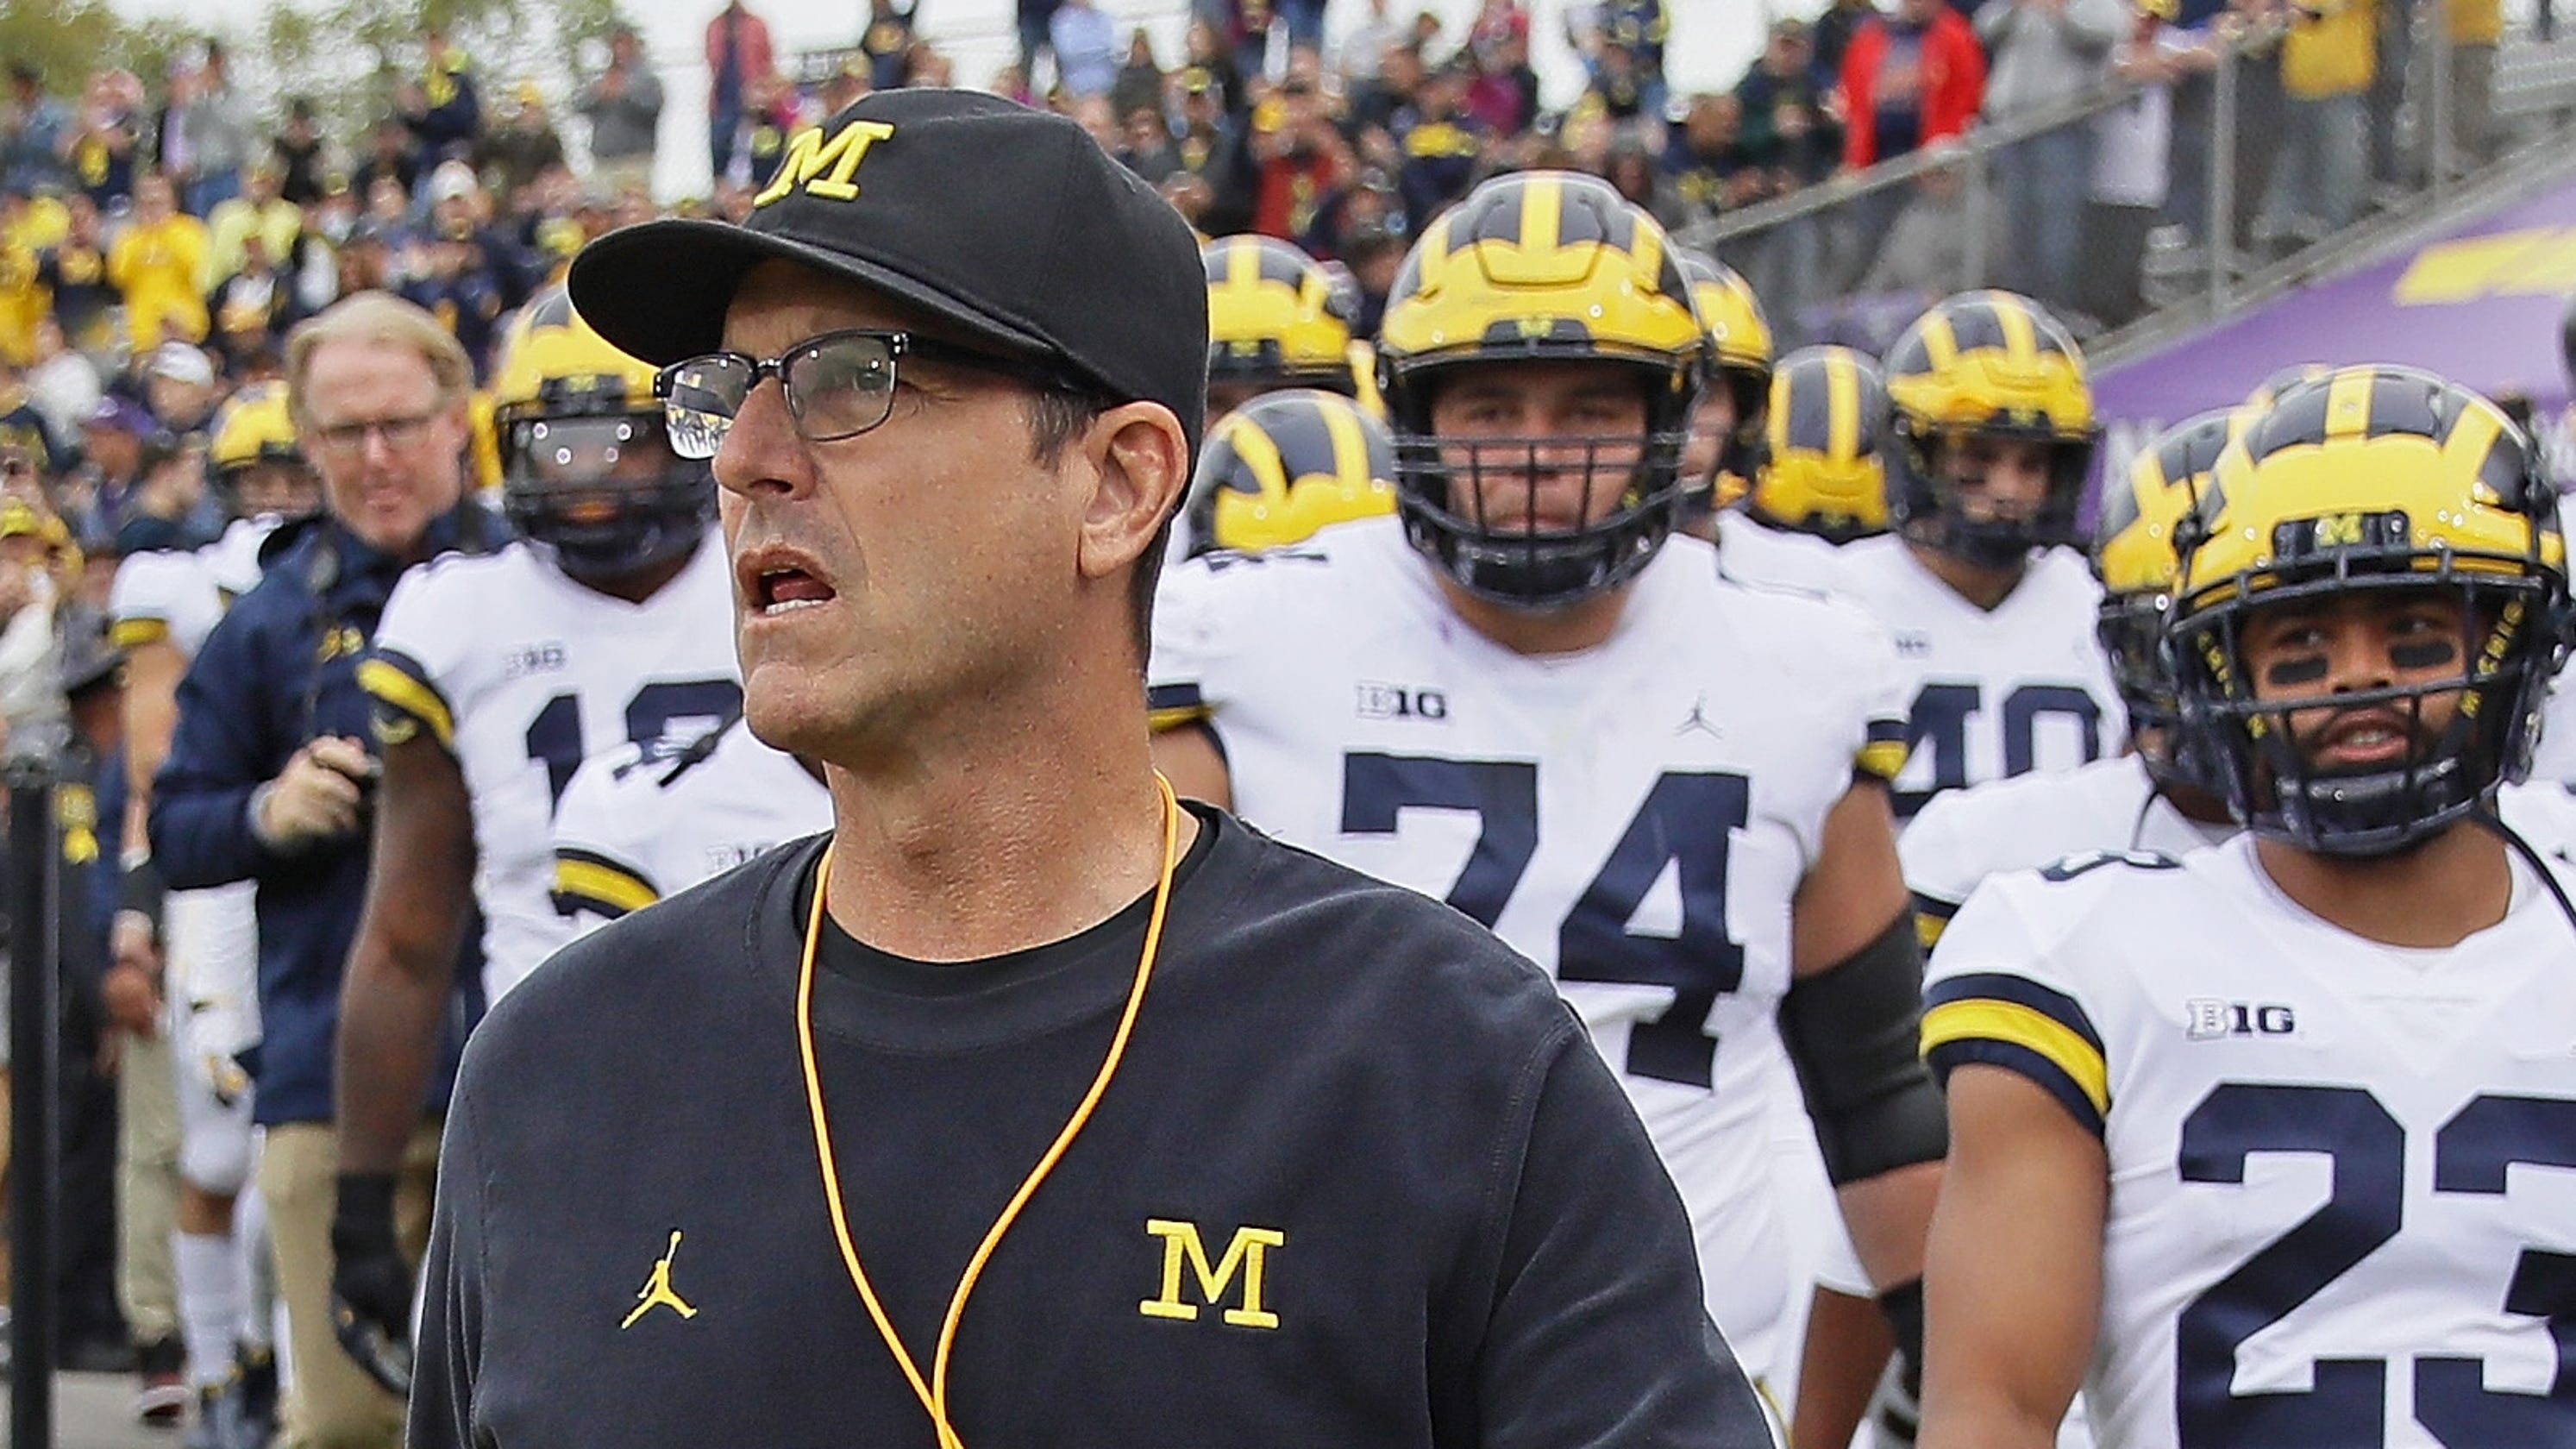 Michigan football final grades: A solid year, a wasted chance